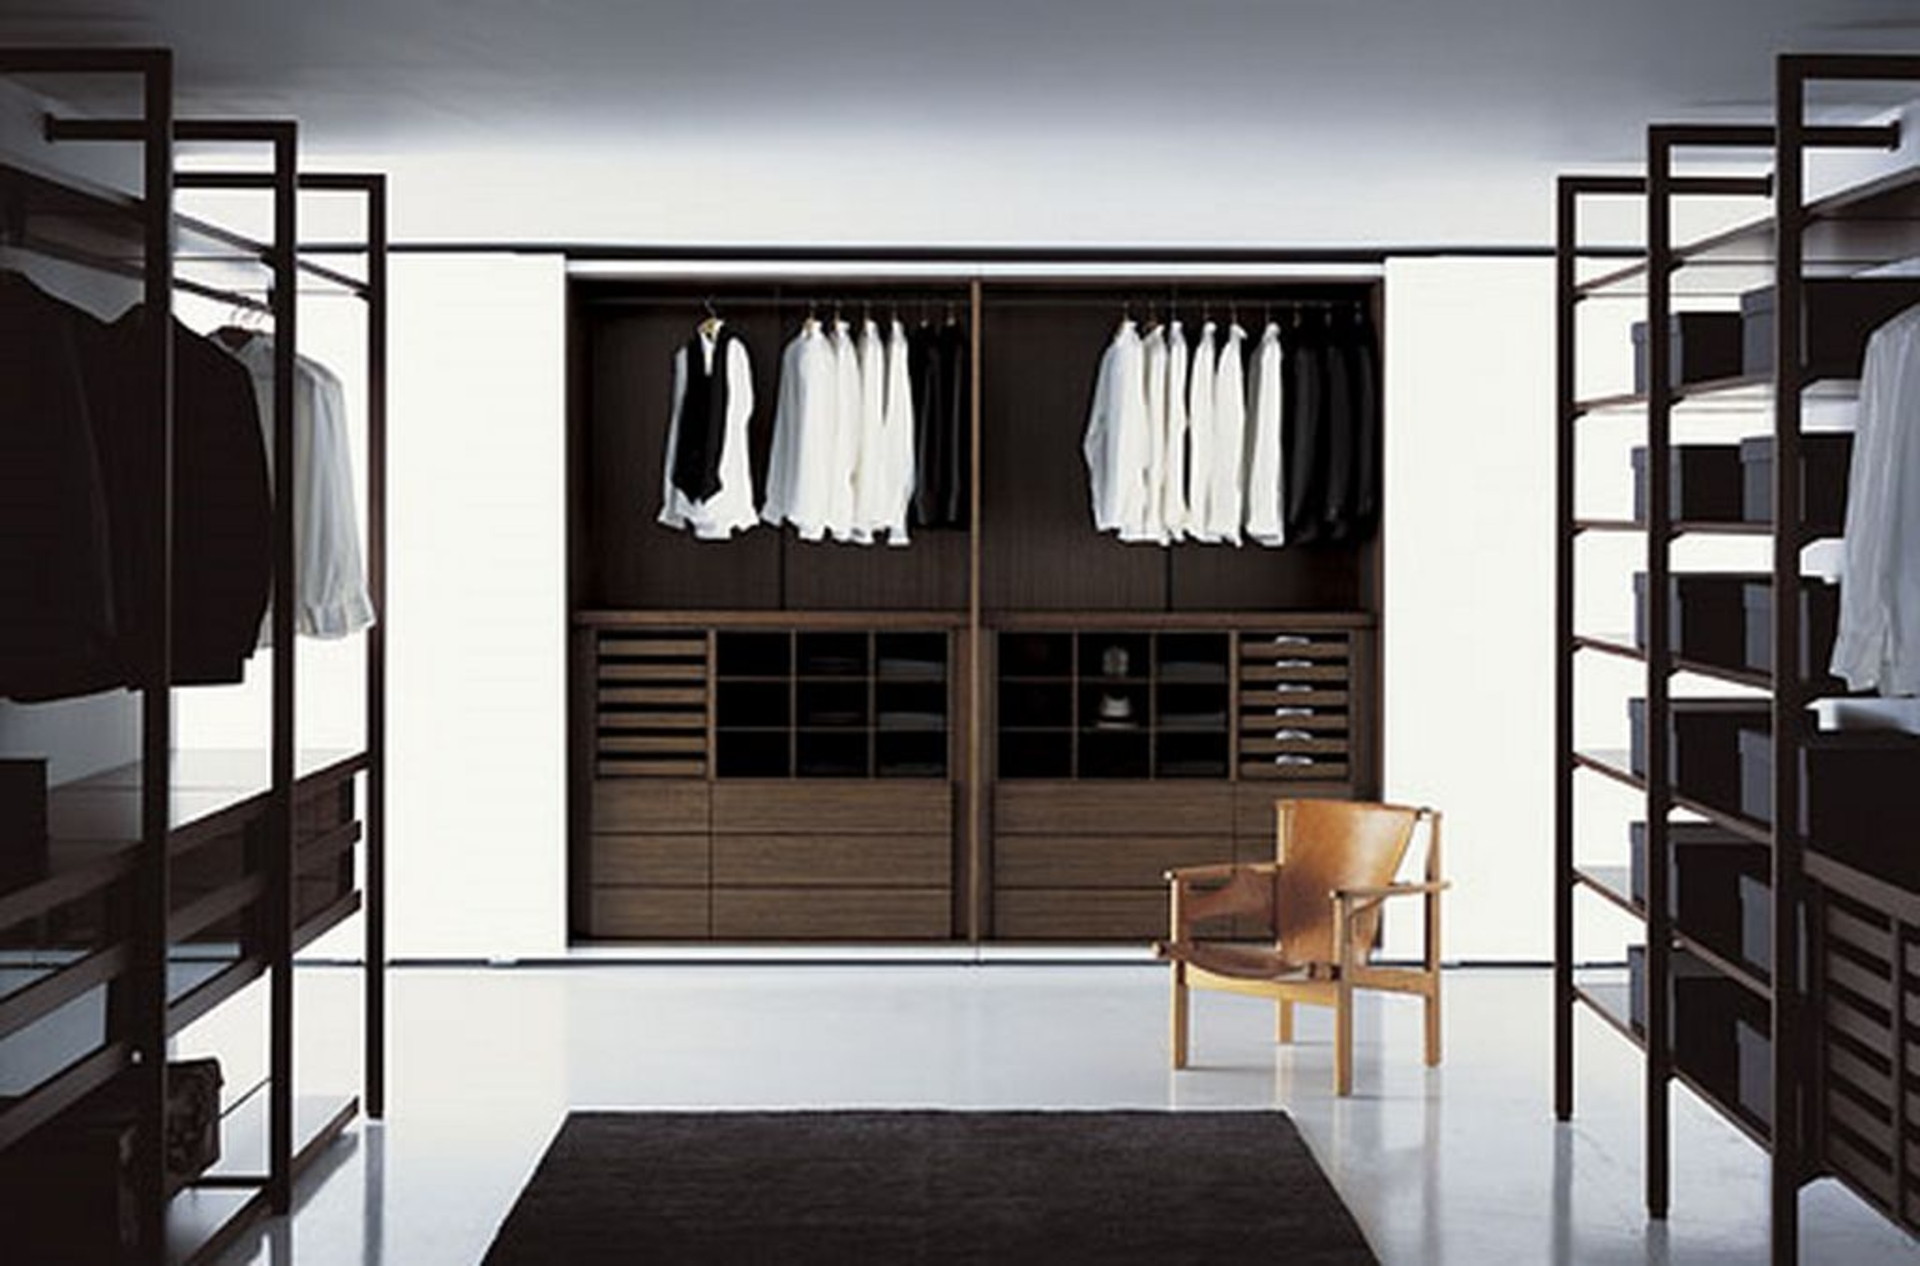 Cheap Wardrobe Closet | Free Standing Wood Wardrobe Closet | Armoire to Hang Clothes